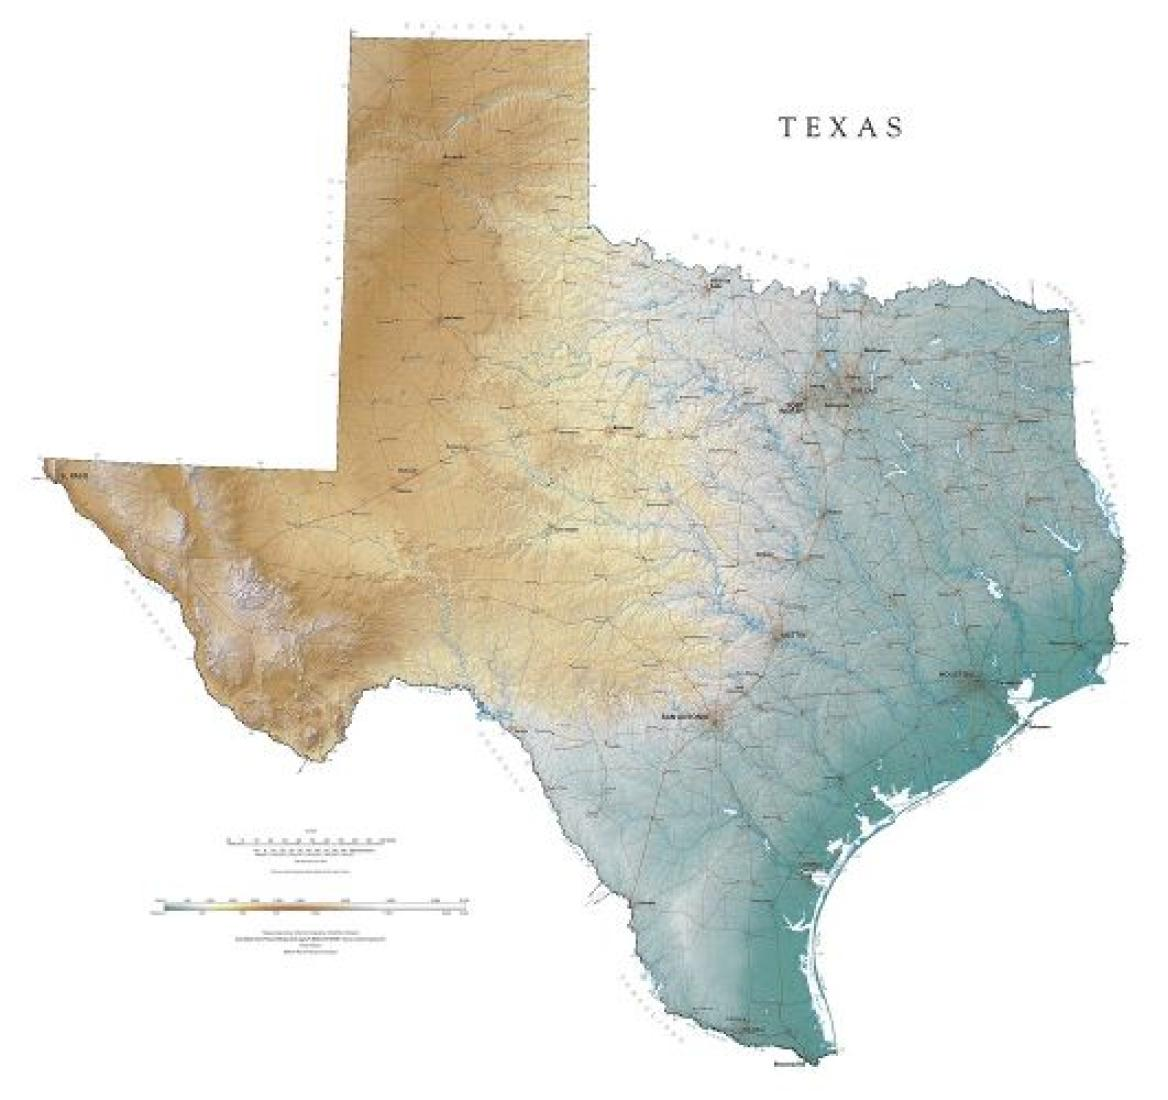 Detailed Map Of Texas.Texas Physical Wall Map By Raven Maps